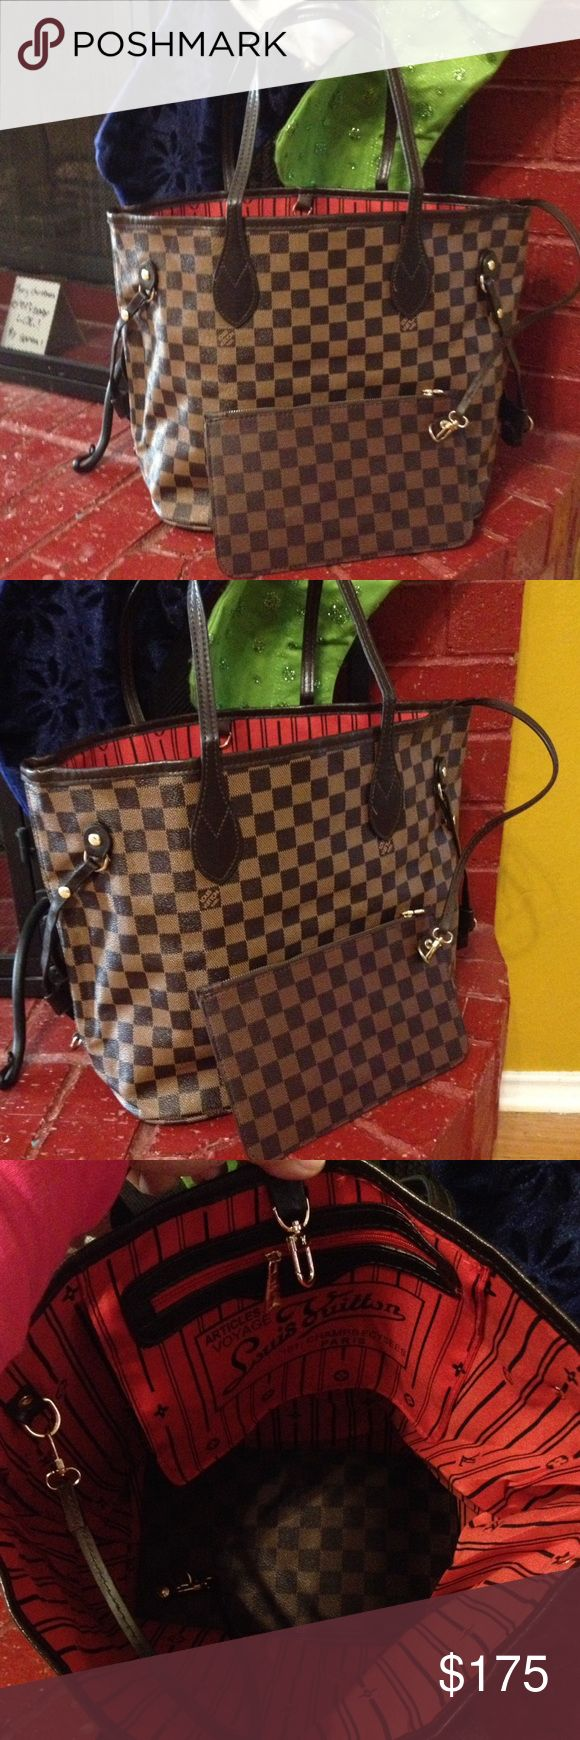 Neverfull Mm set bag Included pouch. Brand new.. Cute medium bag. Price reflect auth. I accept reasonable offers. Ship as today Louis Vuitton Bags Shoulder Bags